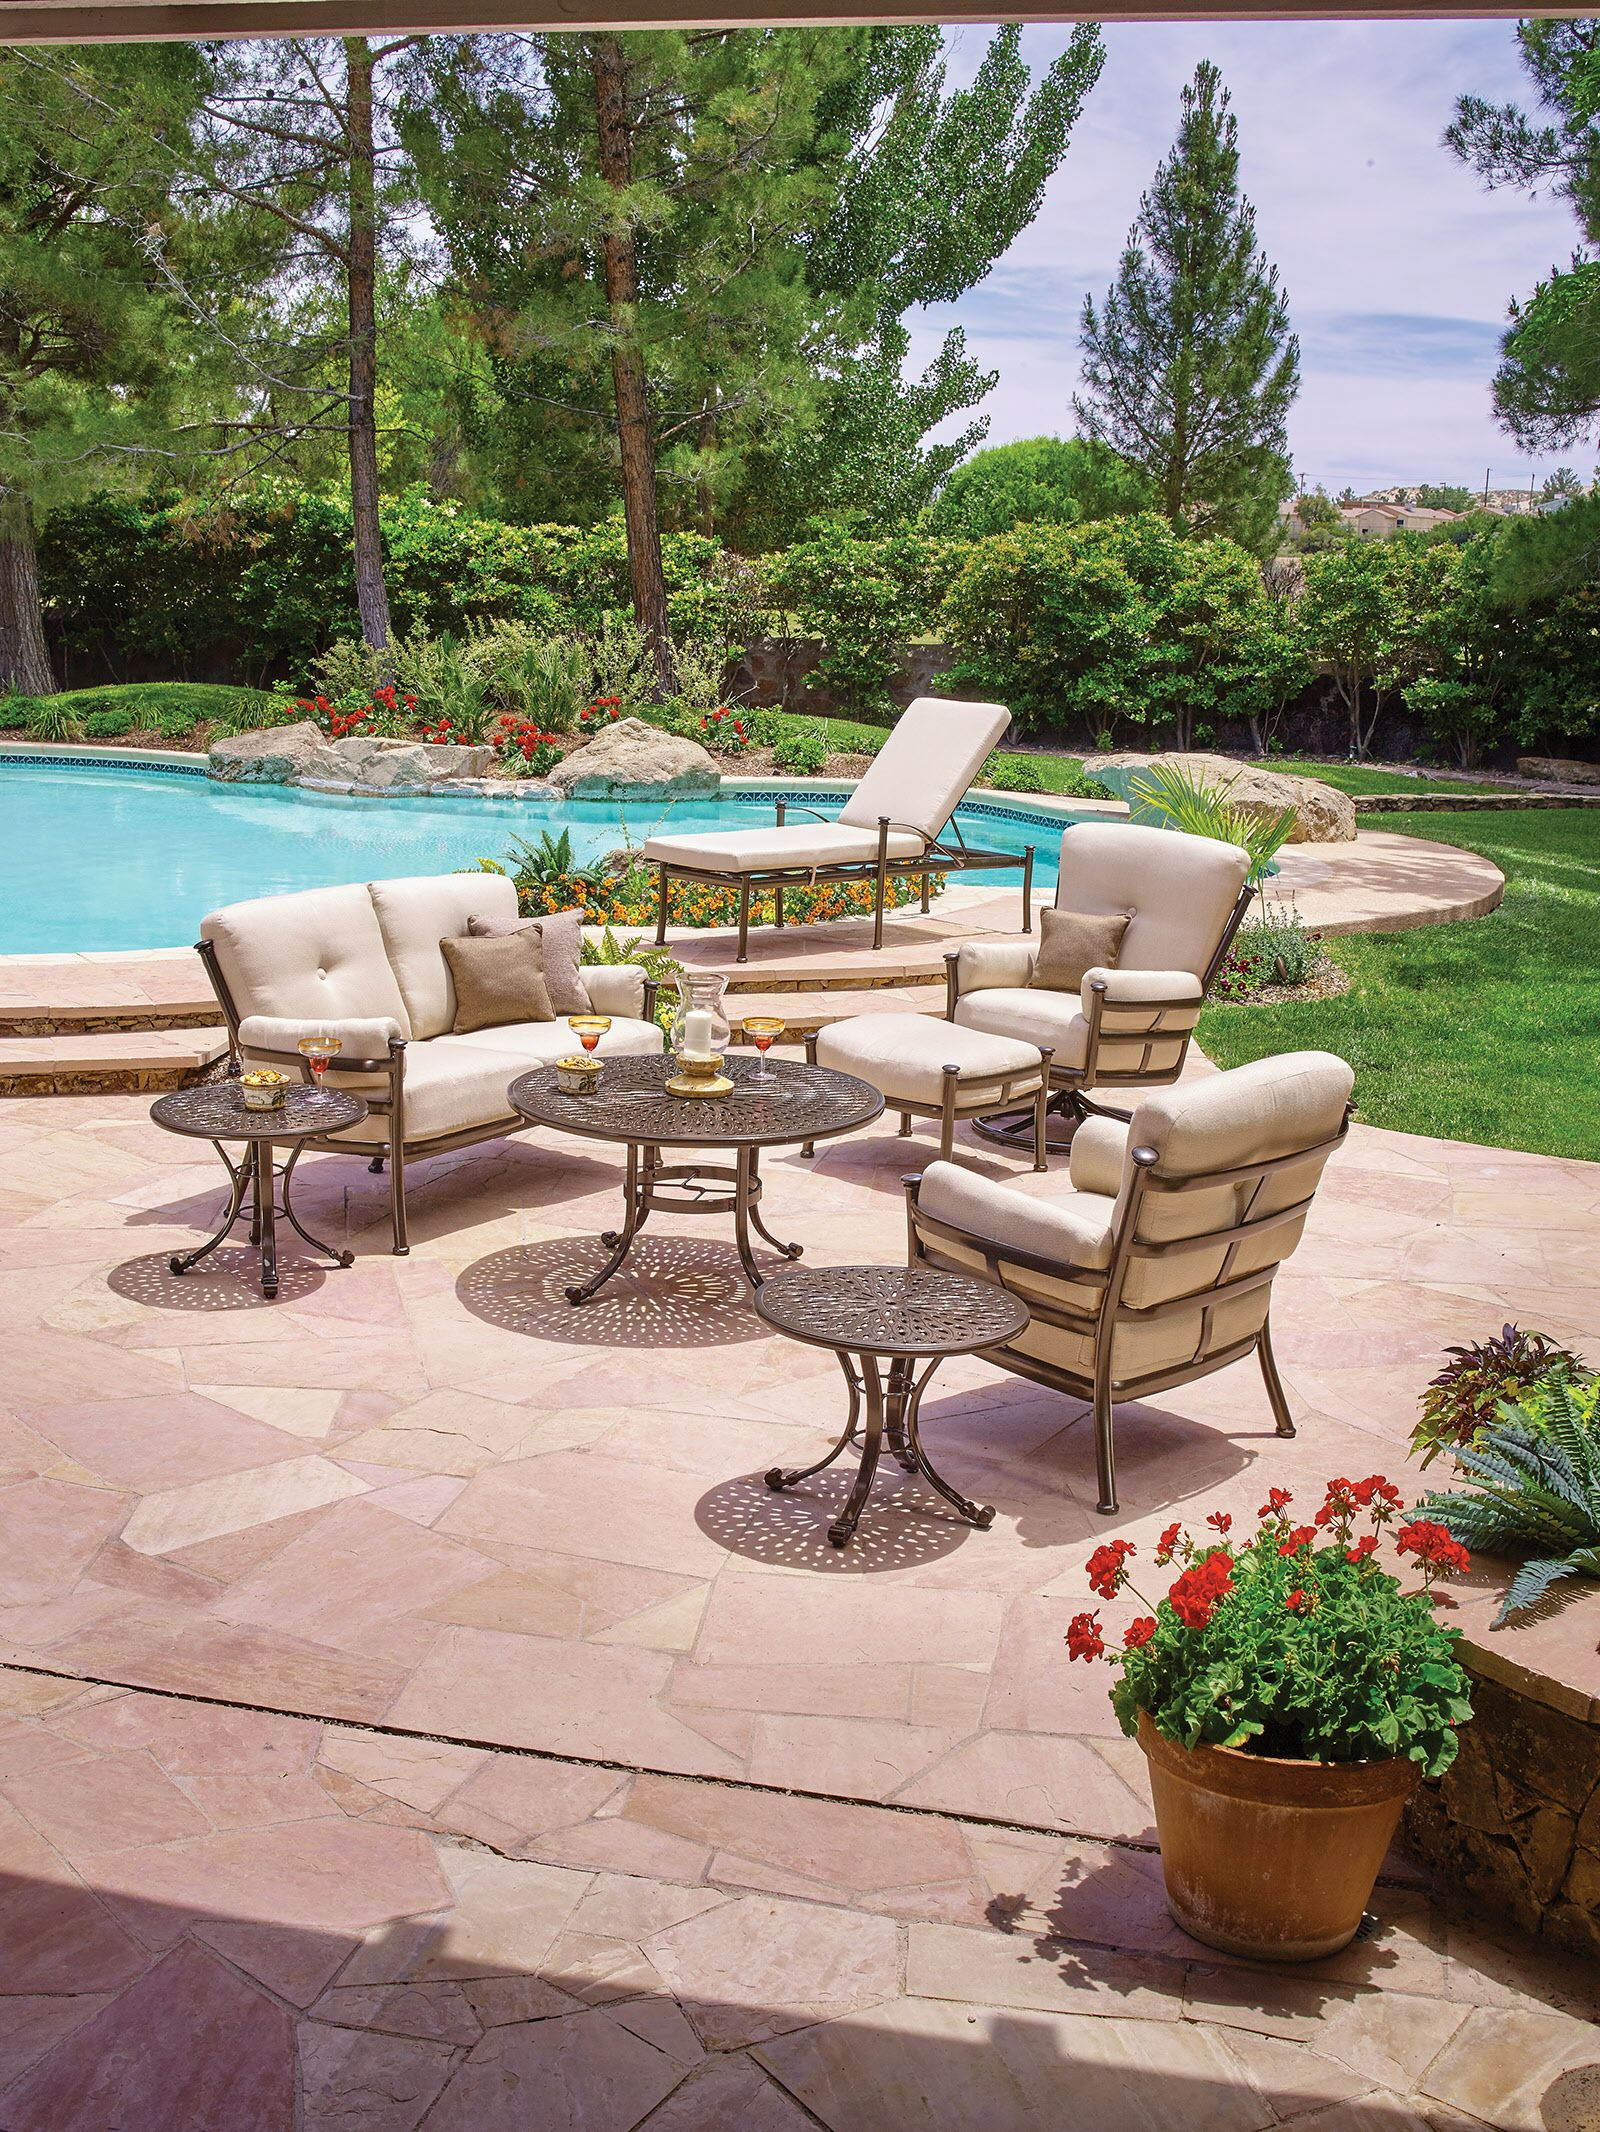 Click for details Patio furniture dining set, Luxury